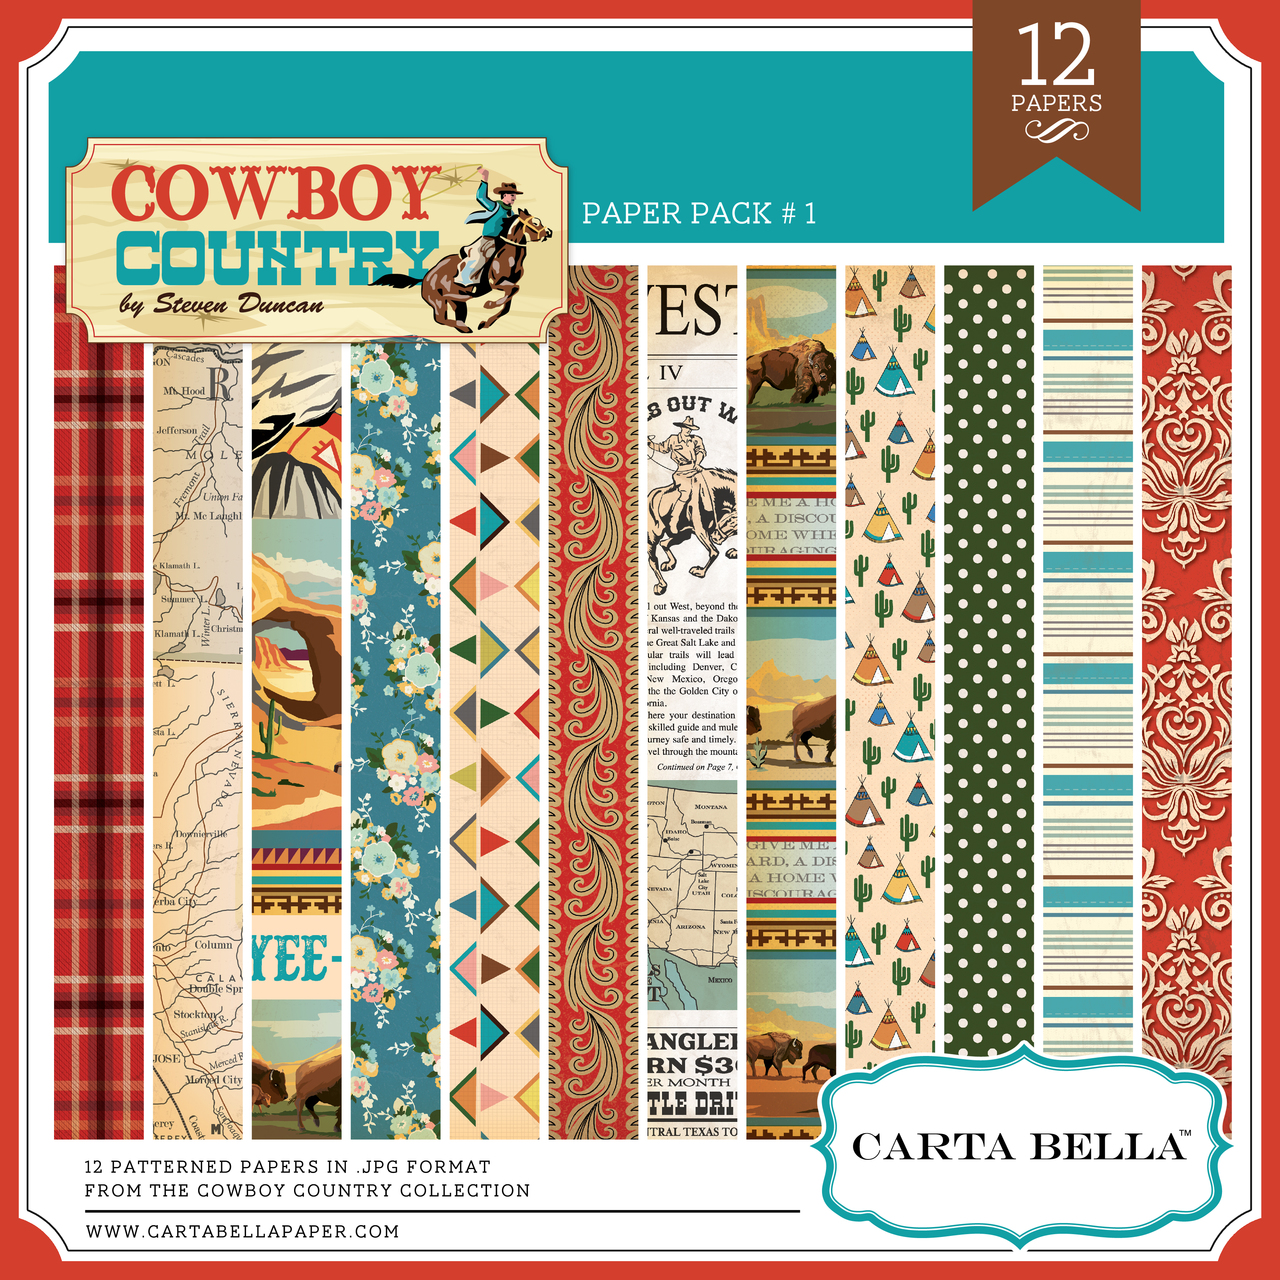 Cowboy Country Paper Pack #2